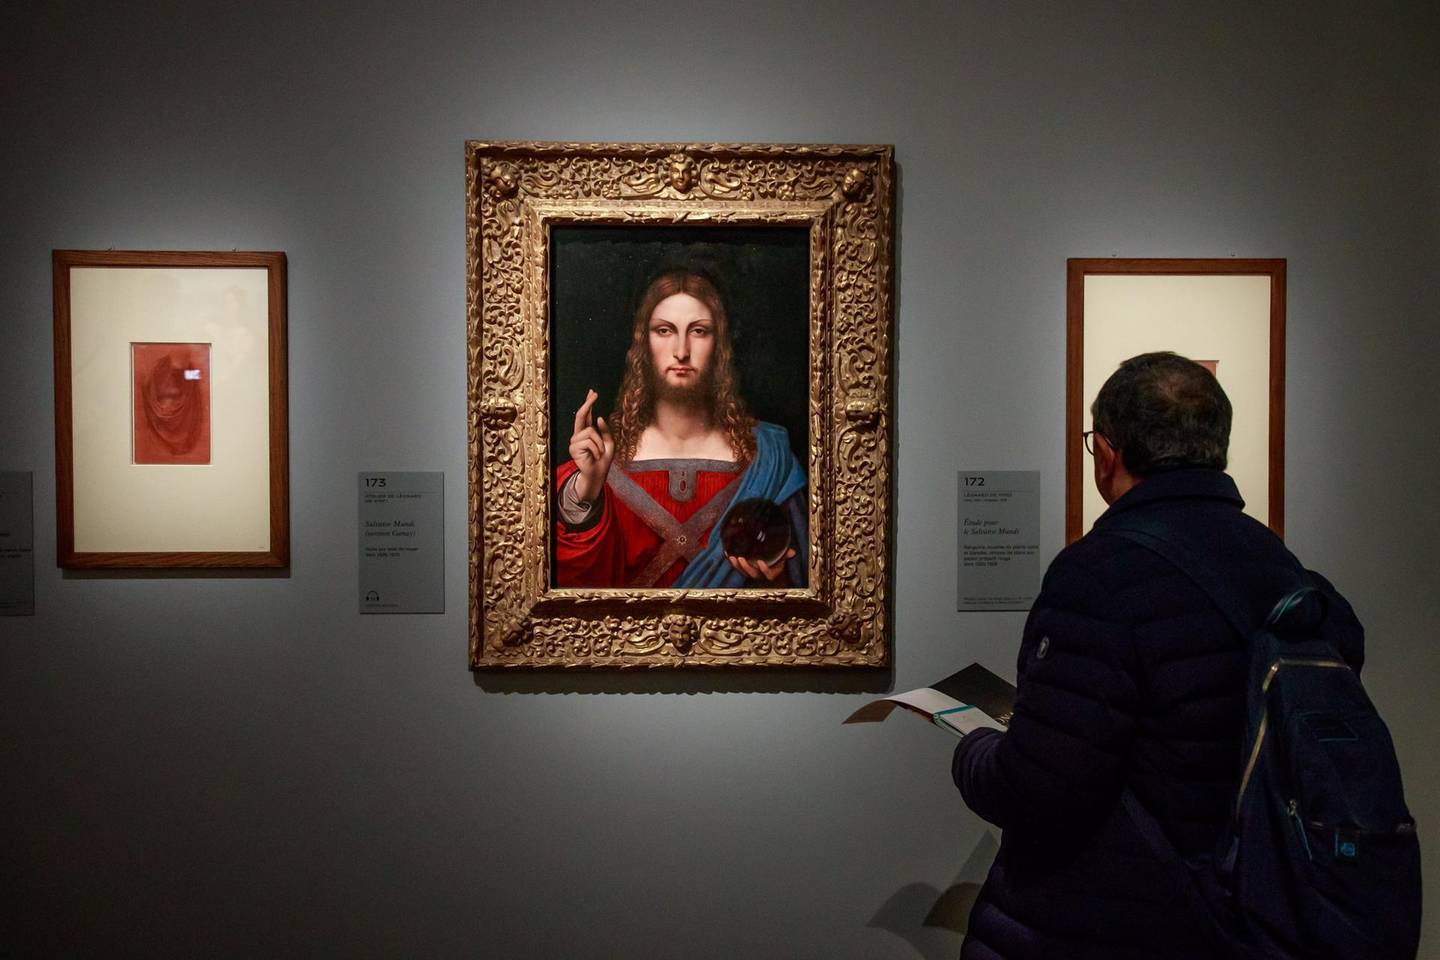 epa07940158 A visitor looks at the painting entitled 'Salvator Mundi' by Italian Renaissance artist Leonardo Da Vinci's workshop during an exhibition at the Louvre Museum in Paris, France, 22 October 2019. The exhbition running from 24 October 2019 to 24 February 2020 marks the 500th anniversary of Da Vinci's death.  EPA/CHRISTOPHE PETIT TESSON